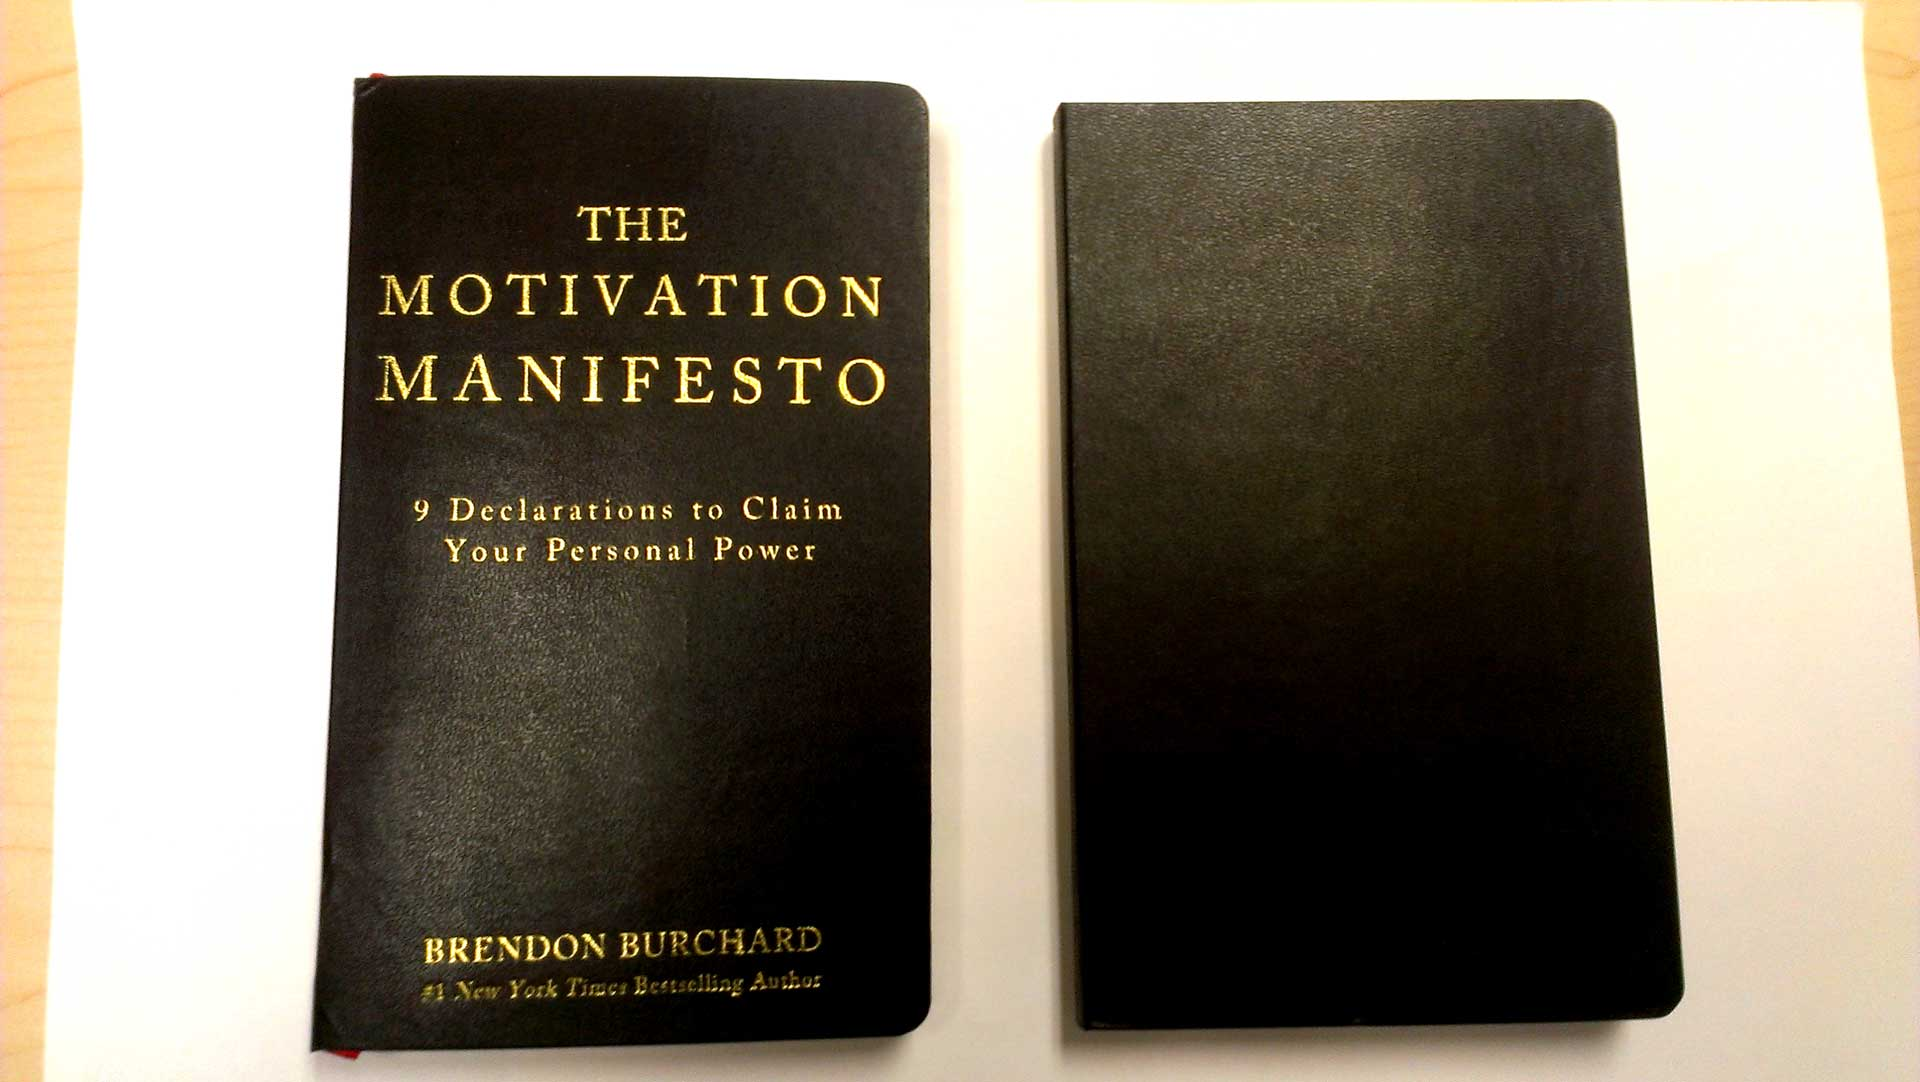 Brendon Burchard's Motivation Manifesto book